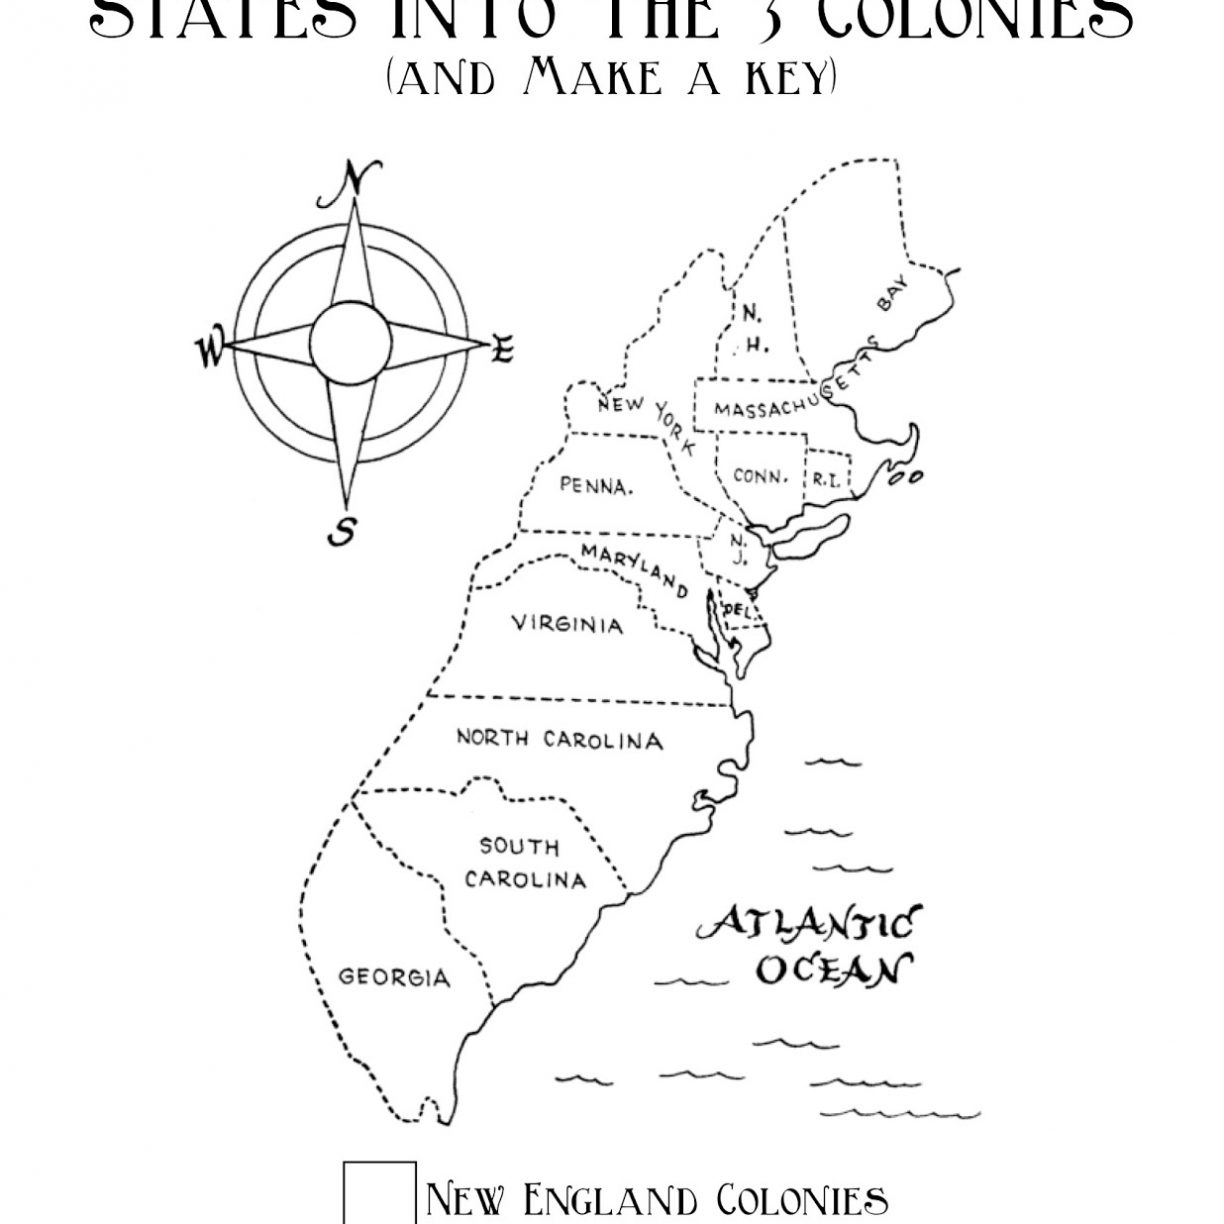 13 Colonies Coloring Page At Getcolorings